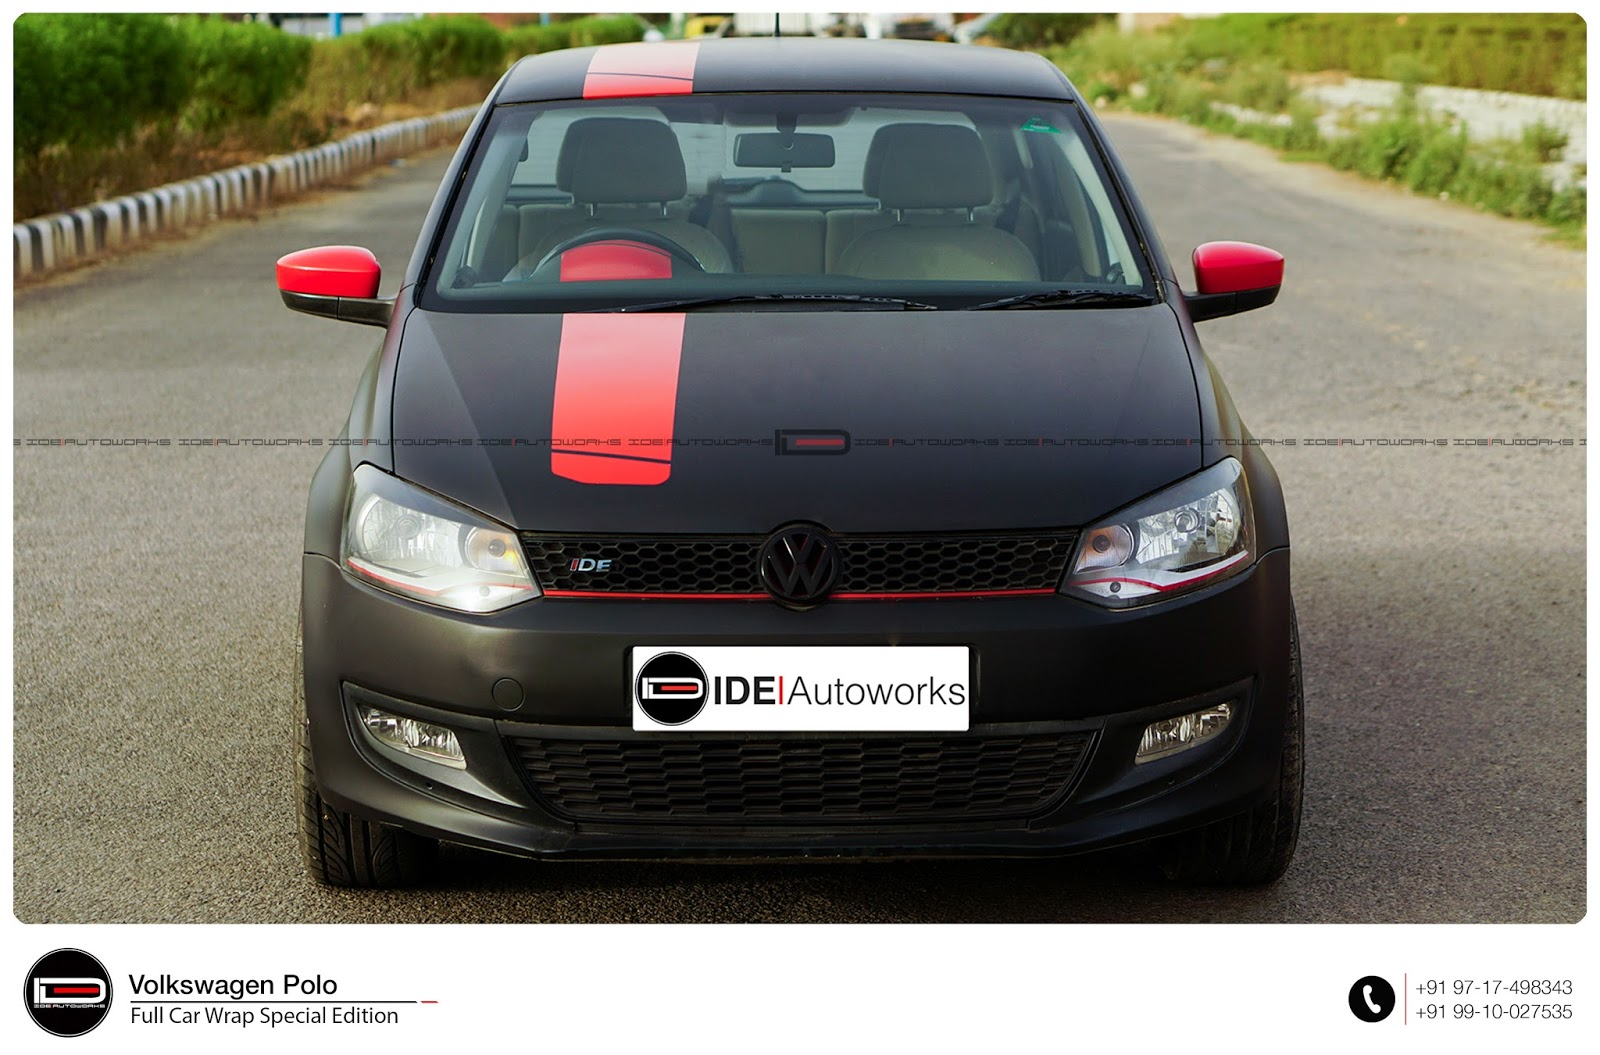 vw polo one off special edition 3 ide autoworks. Black Bedroom Furniture Sets. Home Design Ideas